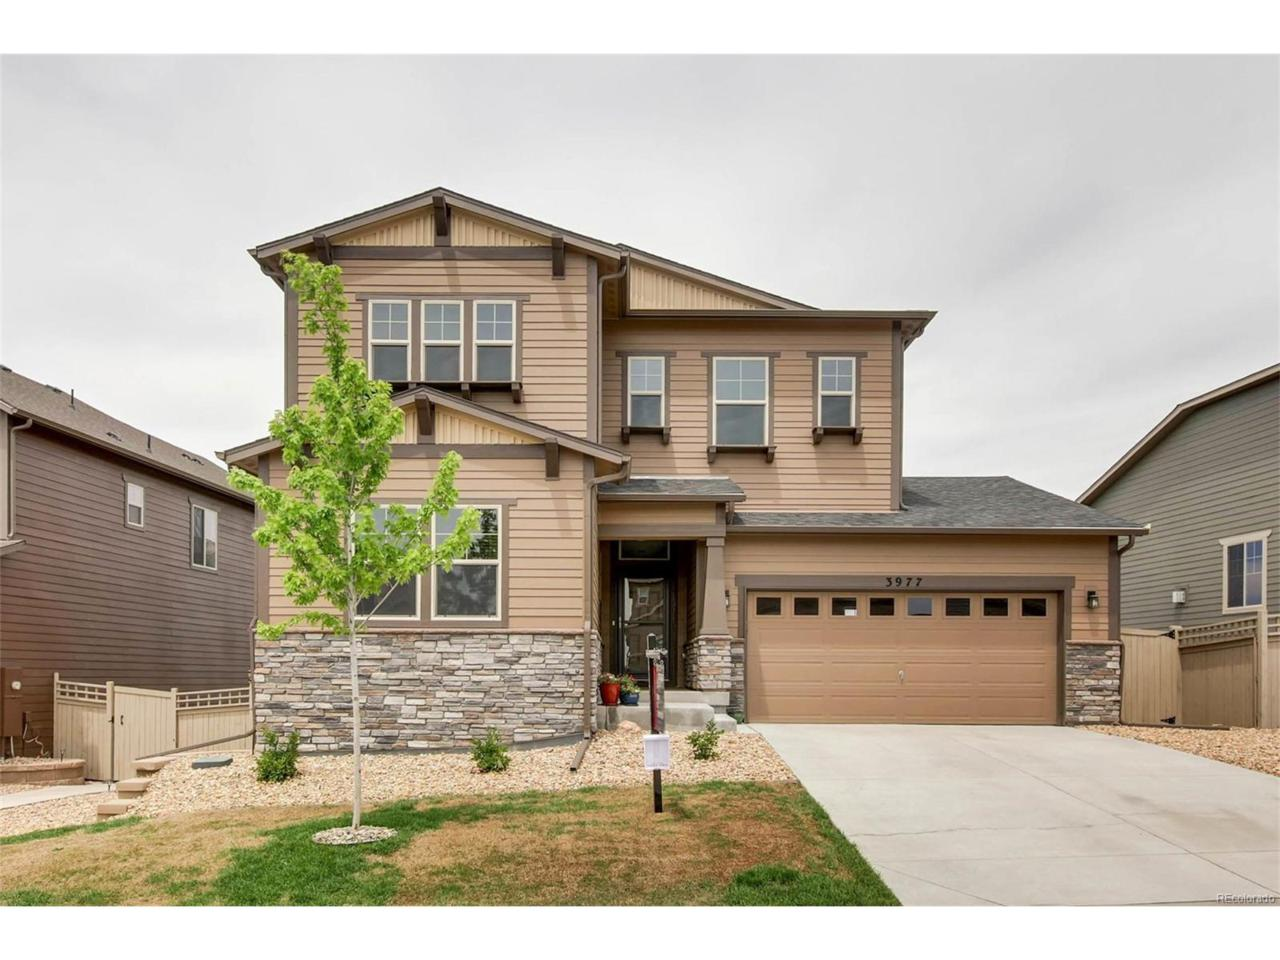 3977 Donnington Circle, Castle Rock, CO 80104 (MLS #3877894) :: 8z Real Estate